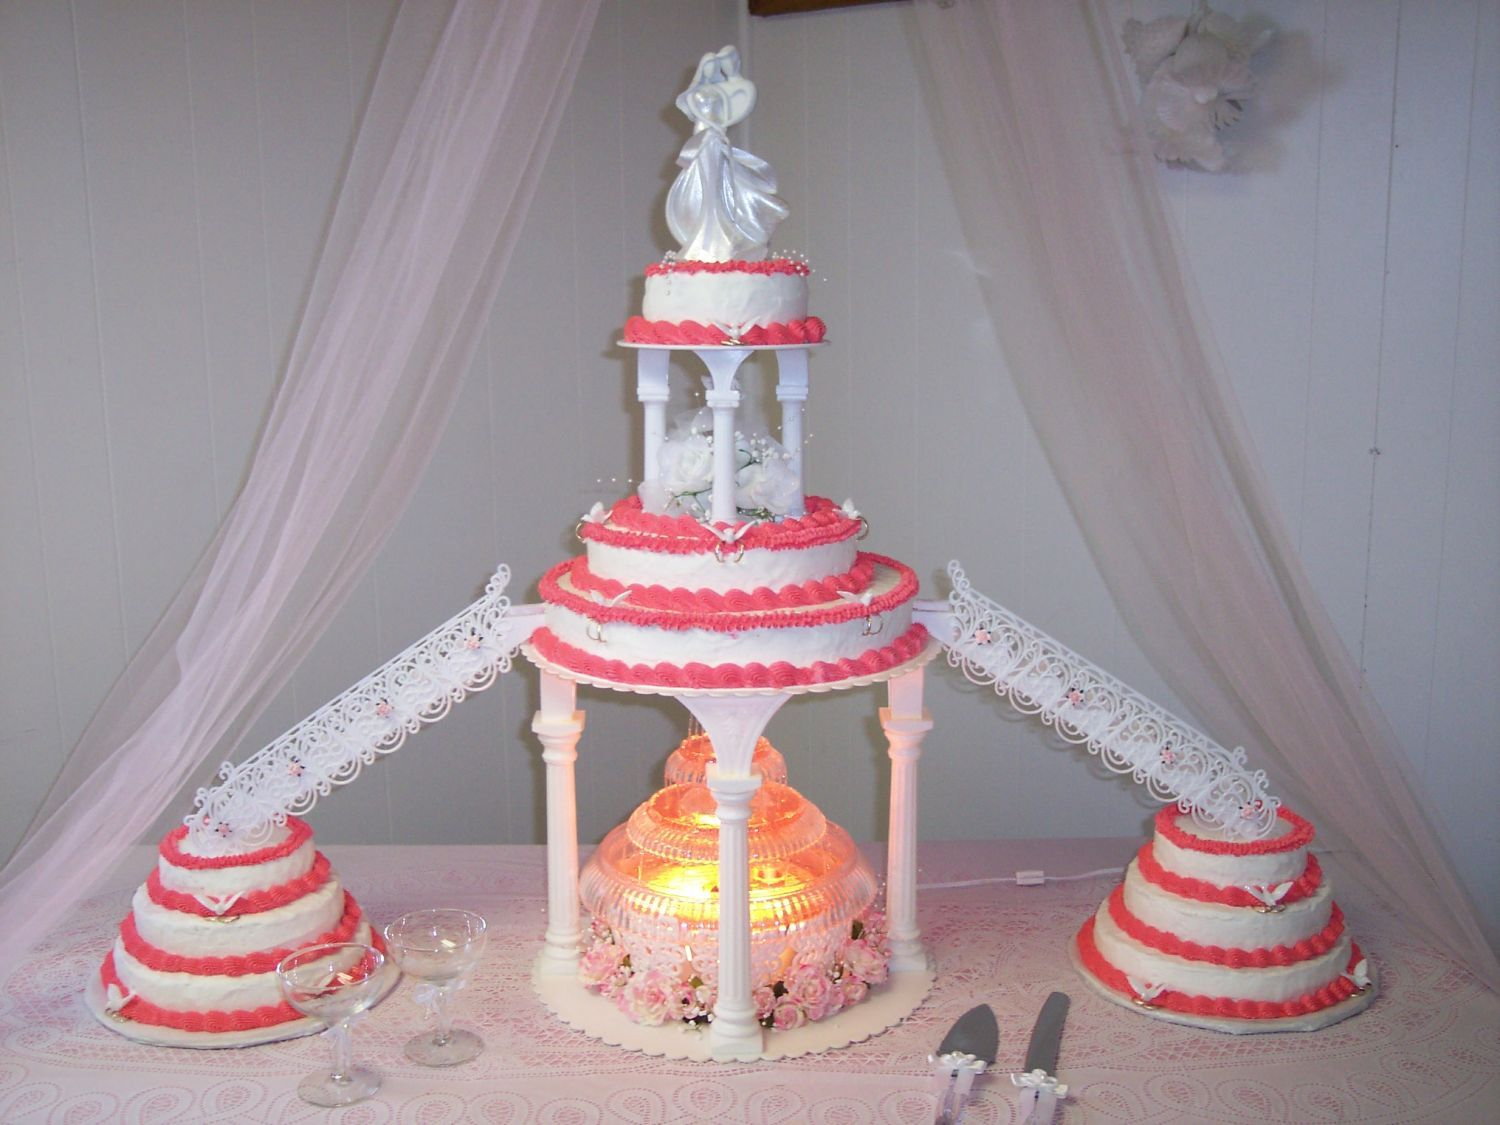 Doves & Wedding Bands 3 Tier with FountainStairs on